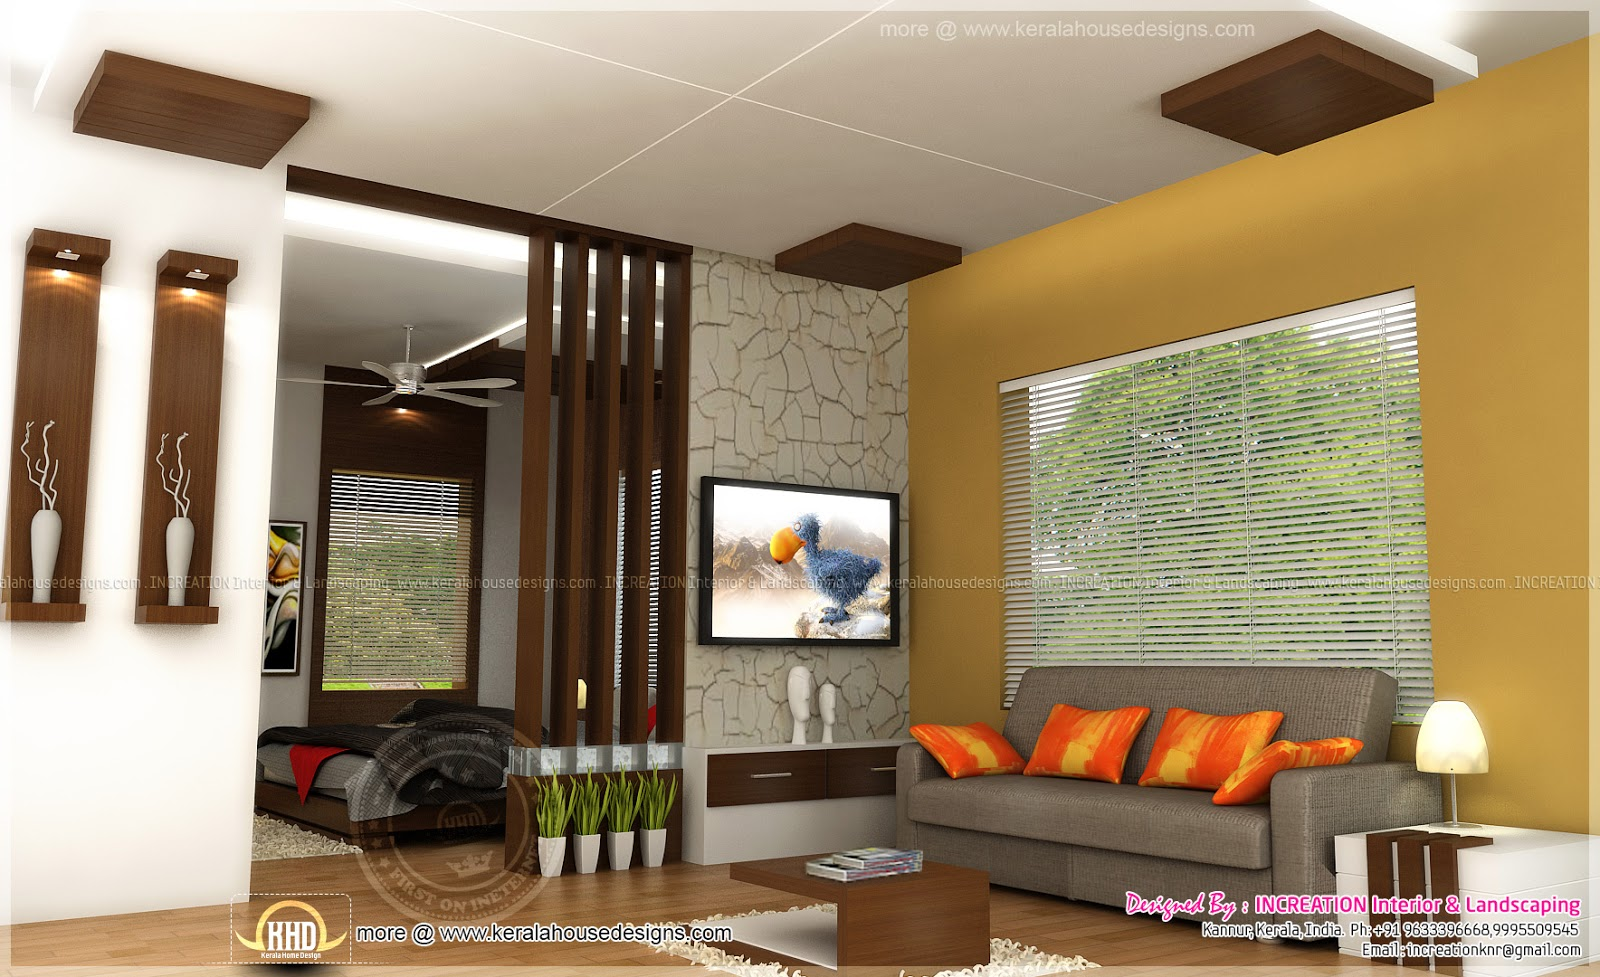 Interior designs from kannur kerala kerala home design for Kerala homes interior designs